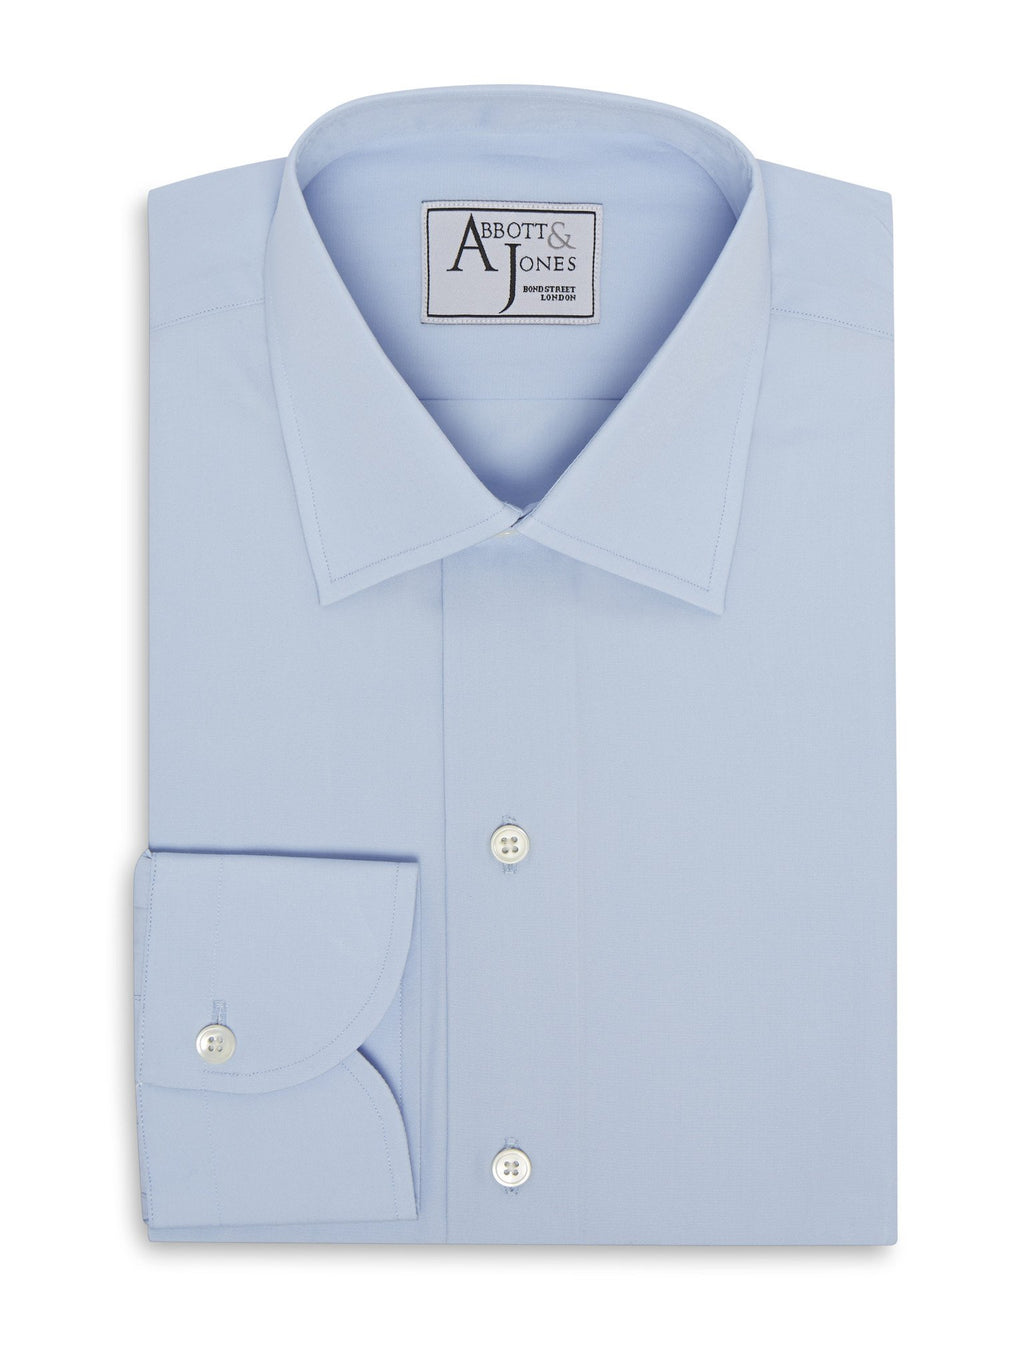 The Abbott & Jones Wrinkle Free Blue Shirt